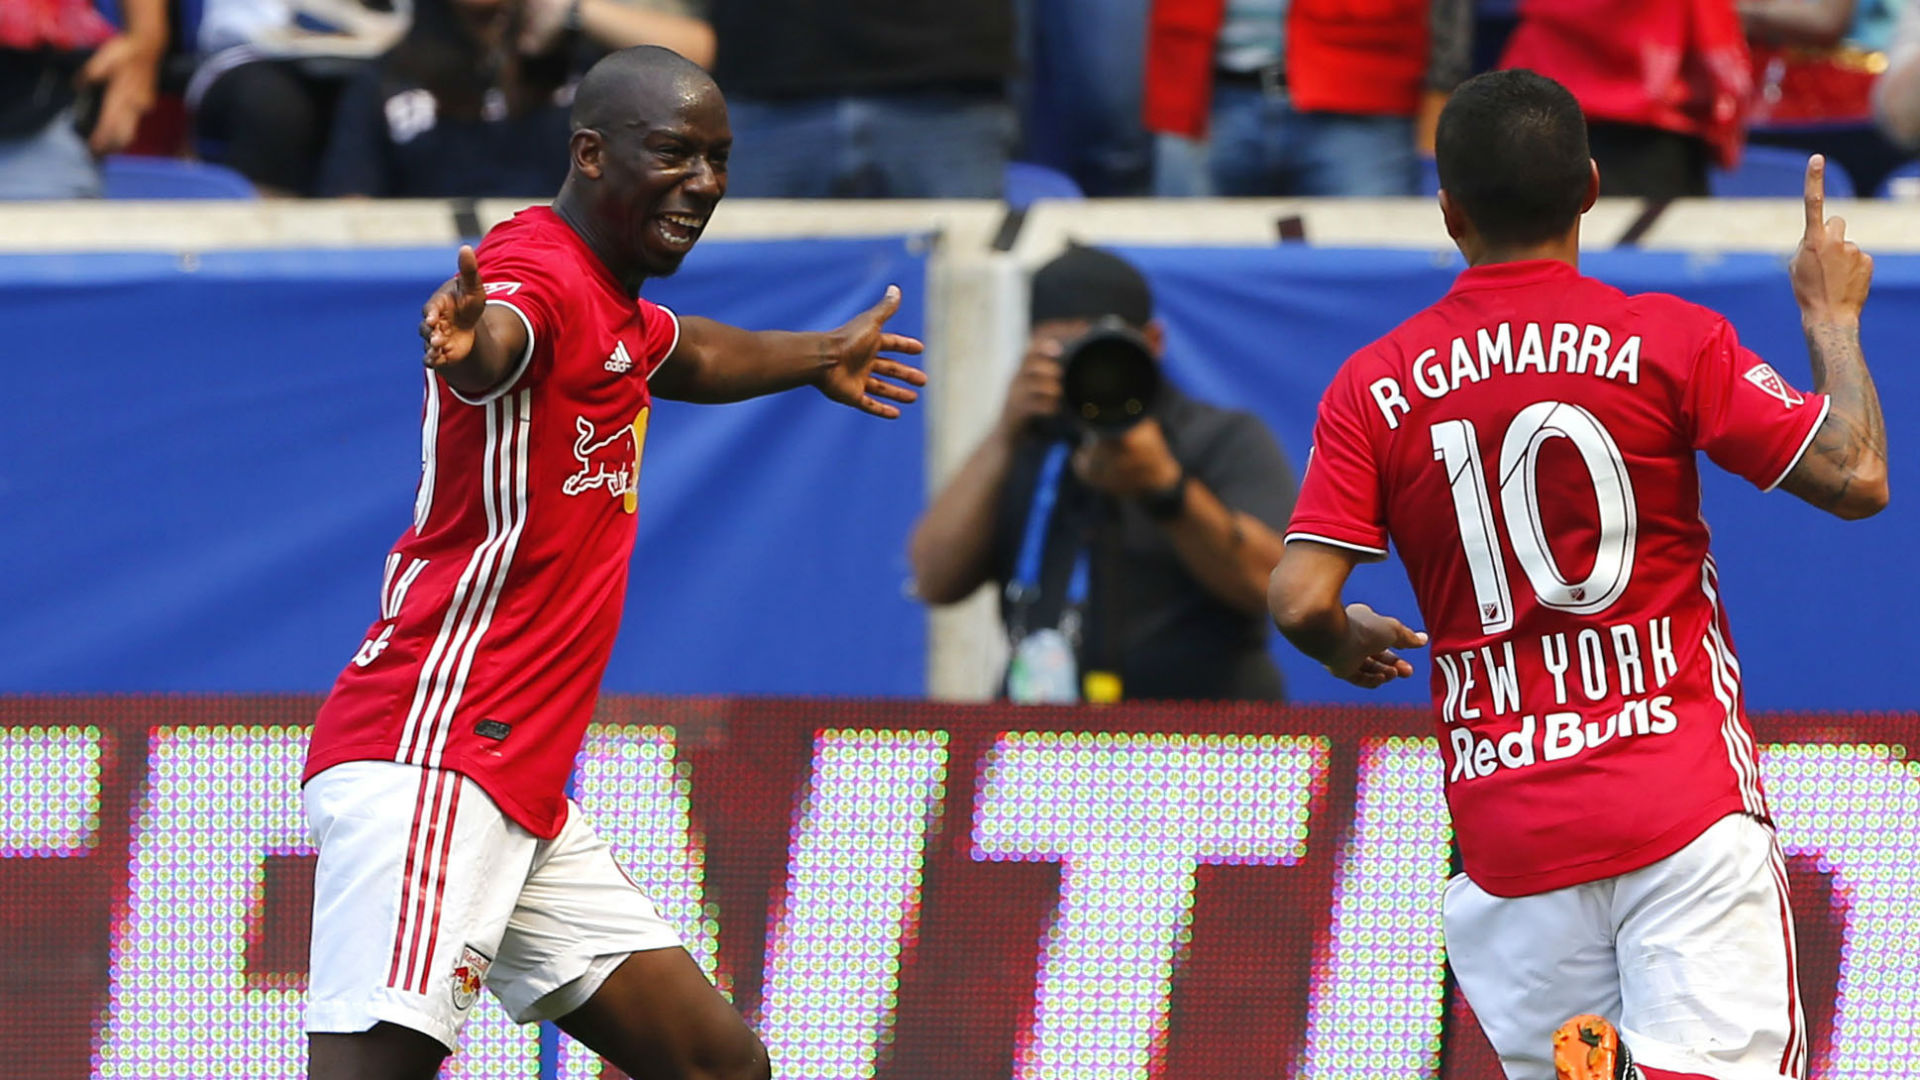 Alejandro Romero Gamarra Wright-Phillips New York Red Bulls MLS